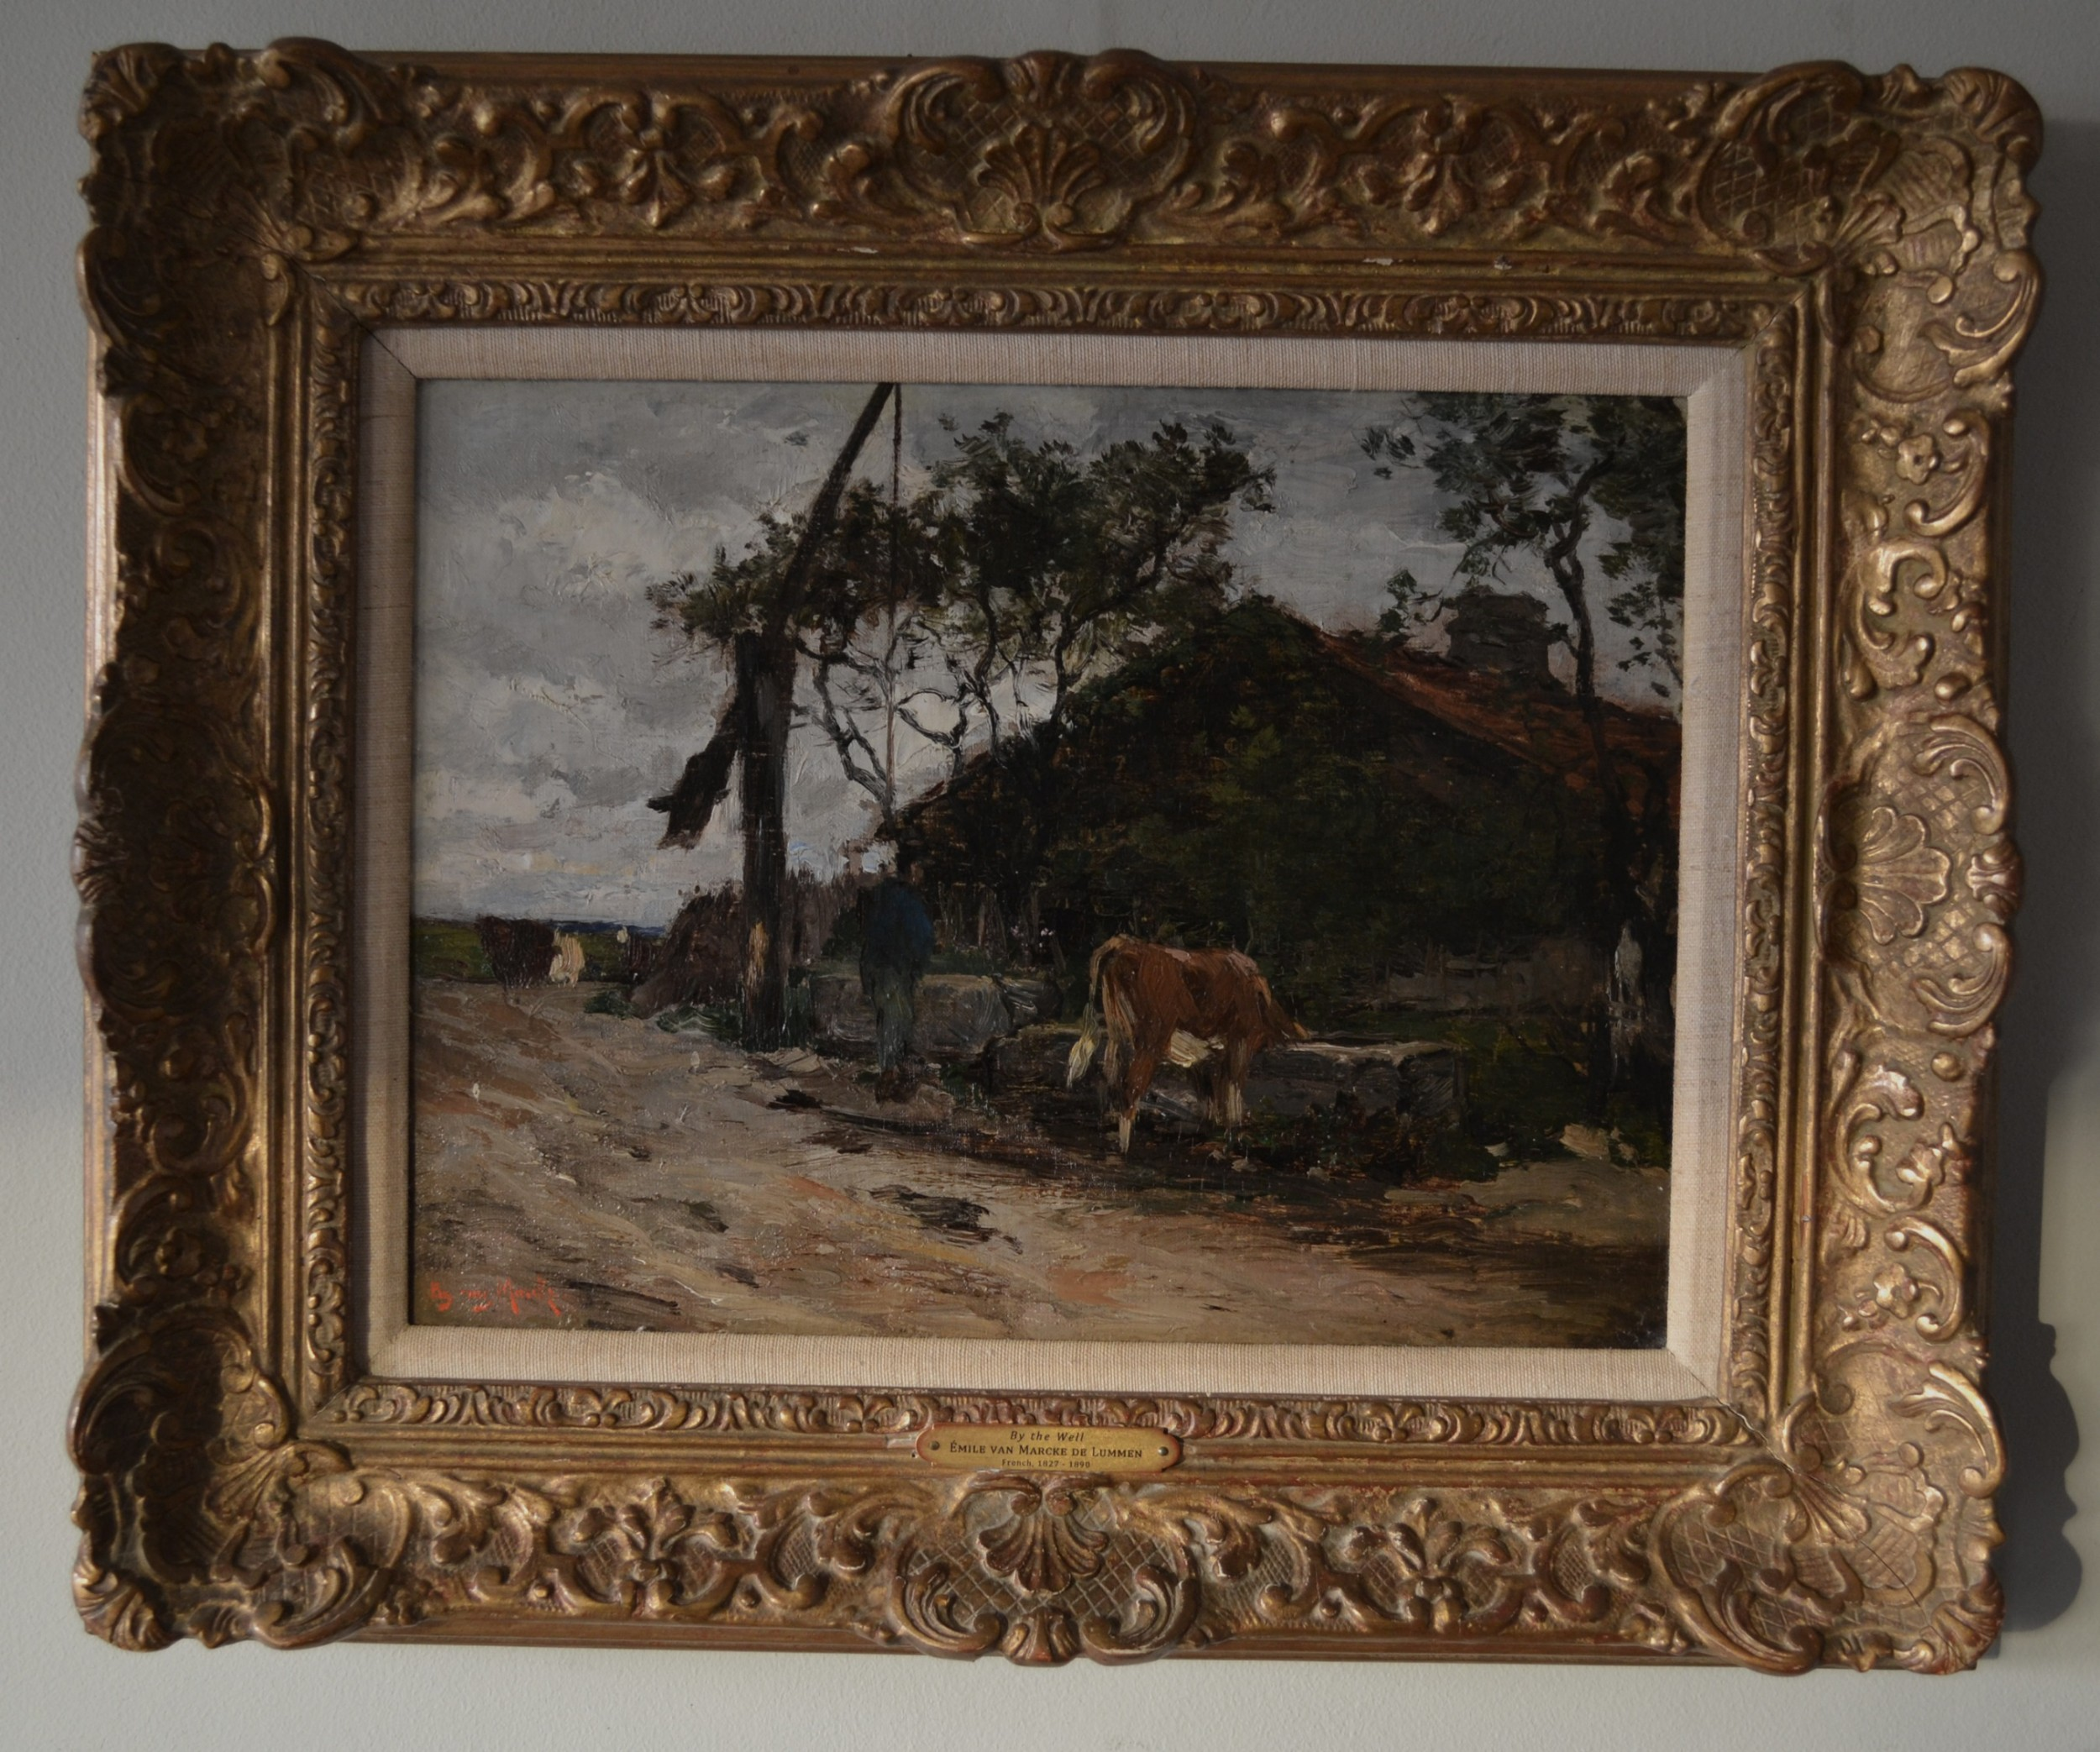 by the well mile van marcke de lummen french 18271890 oil on canvas on panel